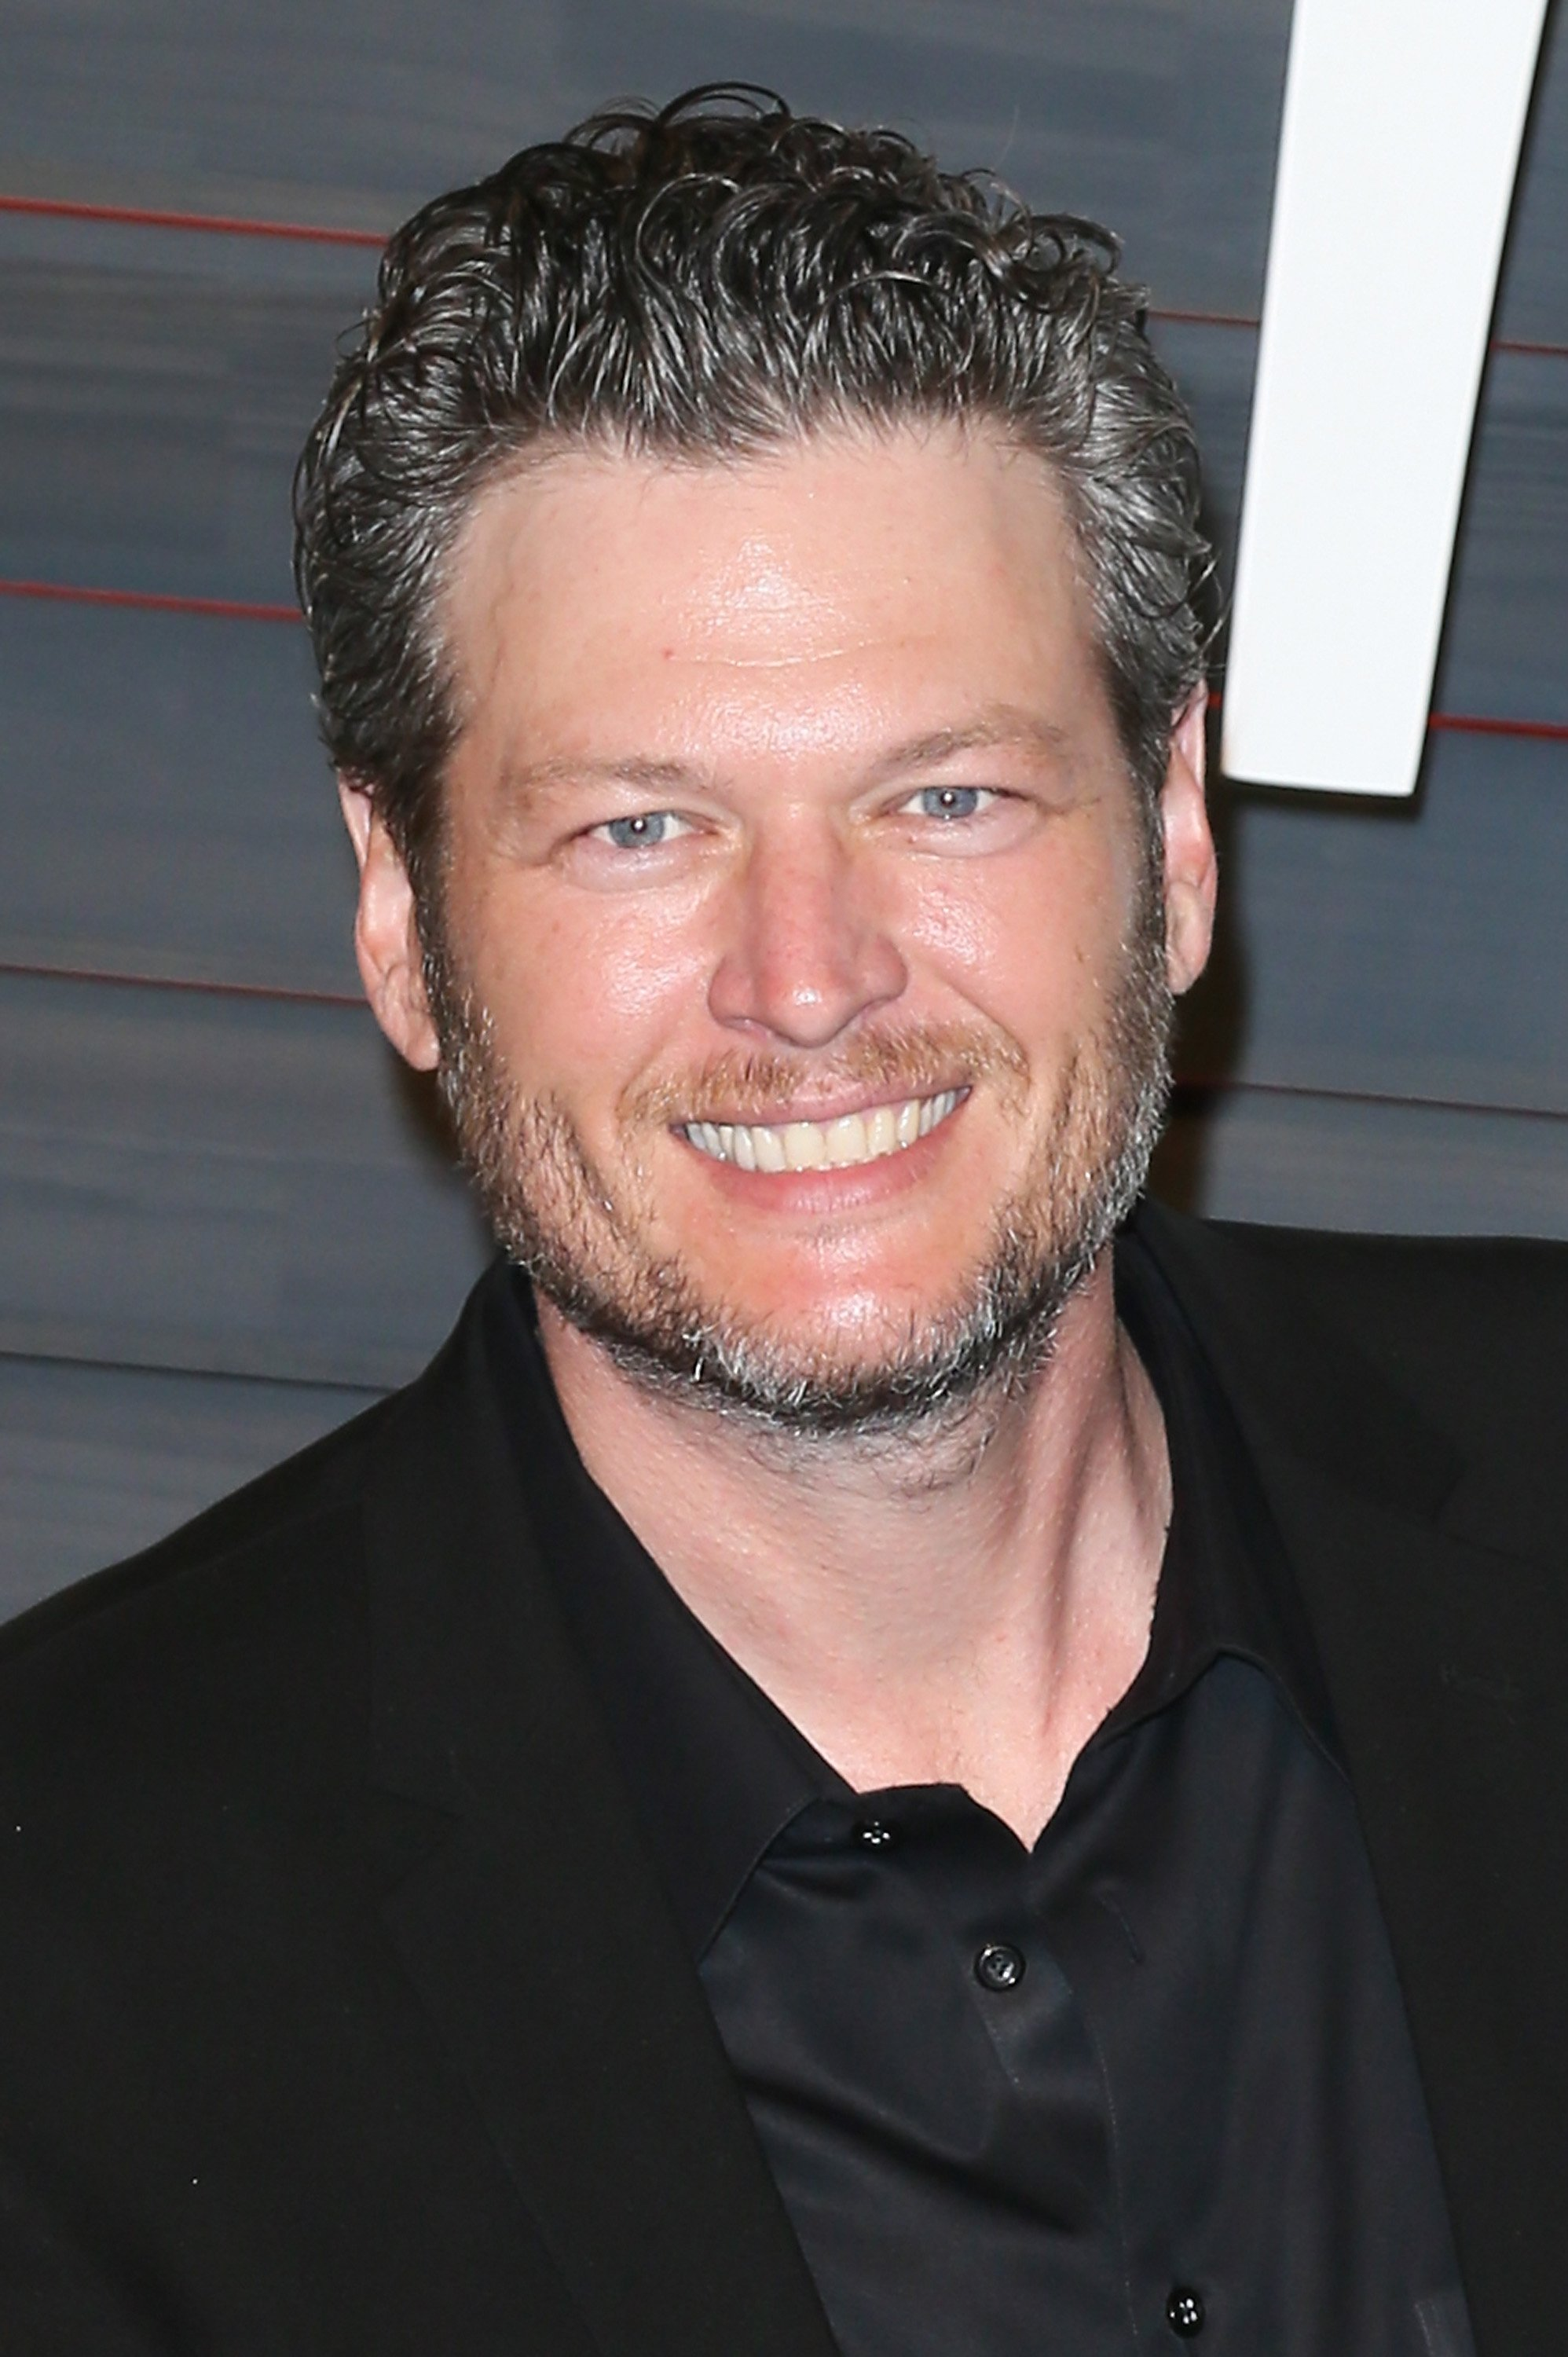 Blake Shelton on February 28, 2016 in Beverly Hills, California | Source: Getty Images/Global Images Ukraine